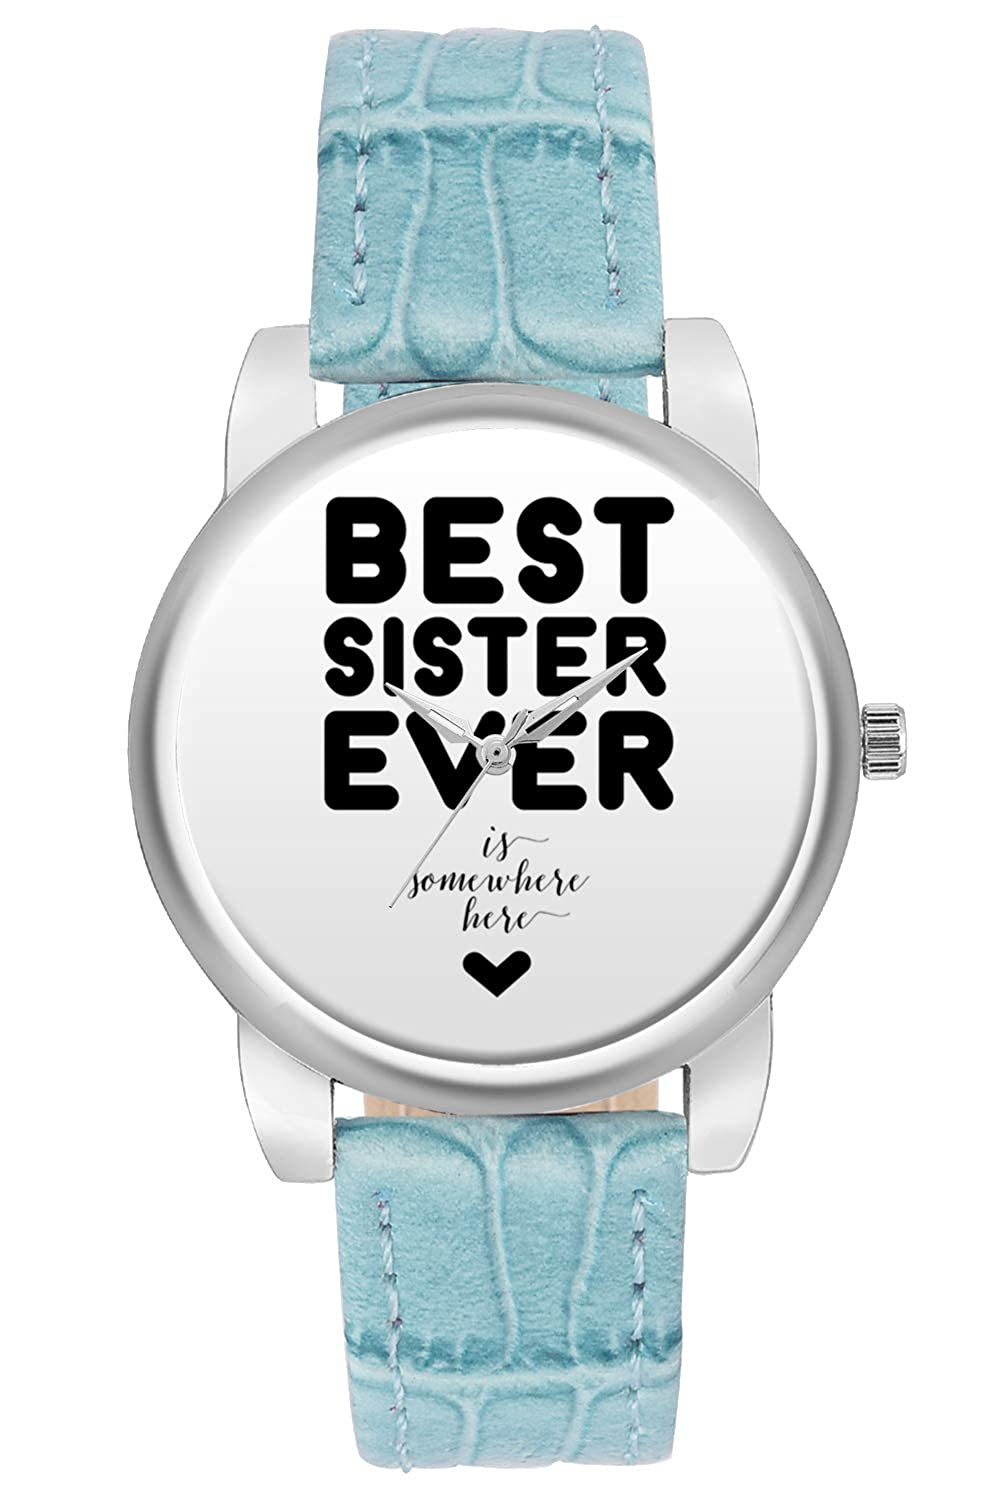 Rakhi Gift for Sister Raksha Bandhan Return Gifts for Sister Wrist Watch for Sisters, Gift for Rakhi, Sister rakshabandhan Gifts.